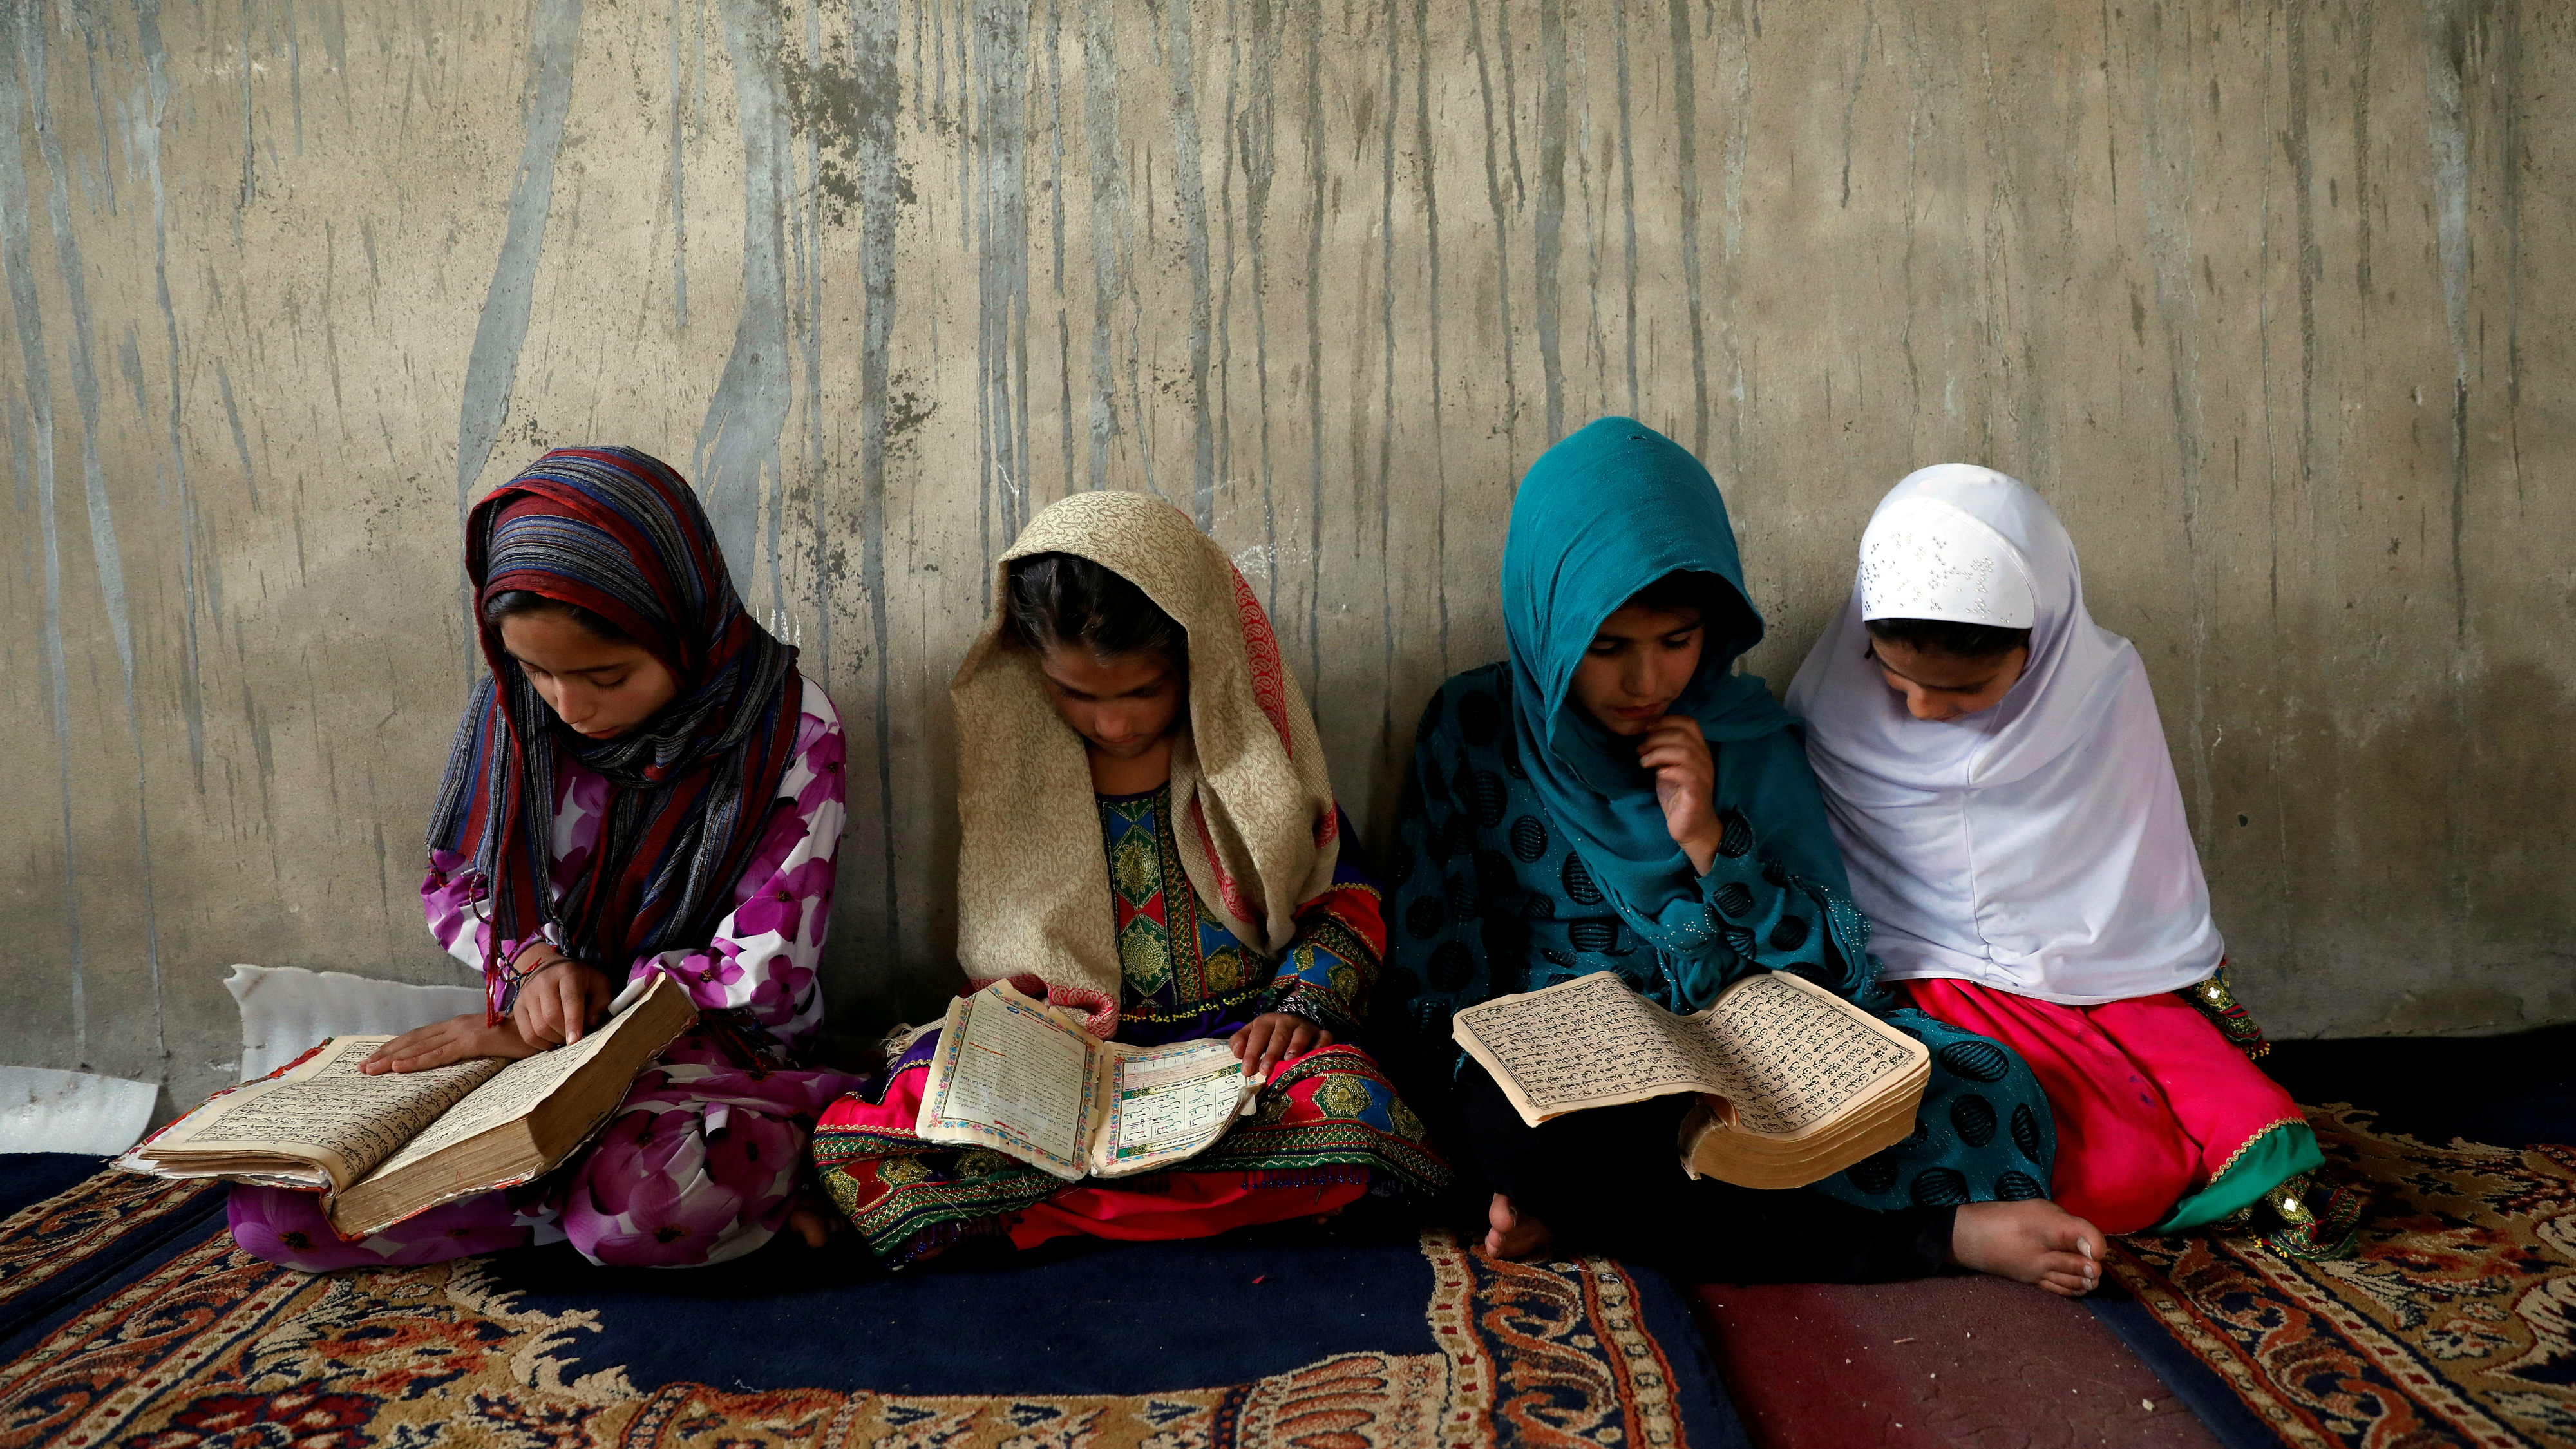 Afghan girls read the Quran in a religious school in Kabul, Afghanistan, May 28, 2018. Humanitarian organizations say 3.7 million children (44 percent) in Afghanistan are out of school — 2.7 million of them are girls.